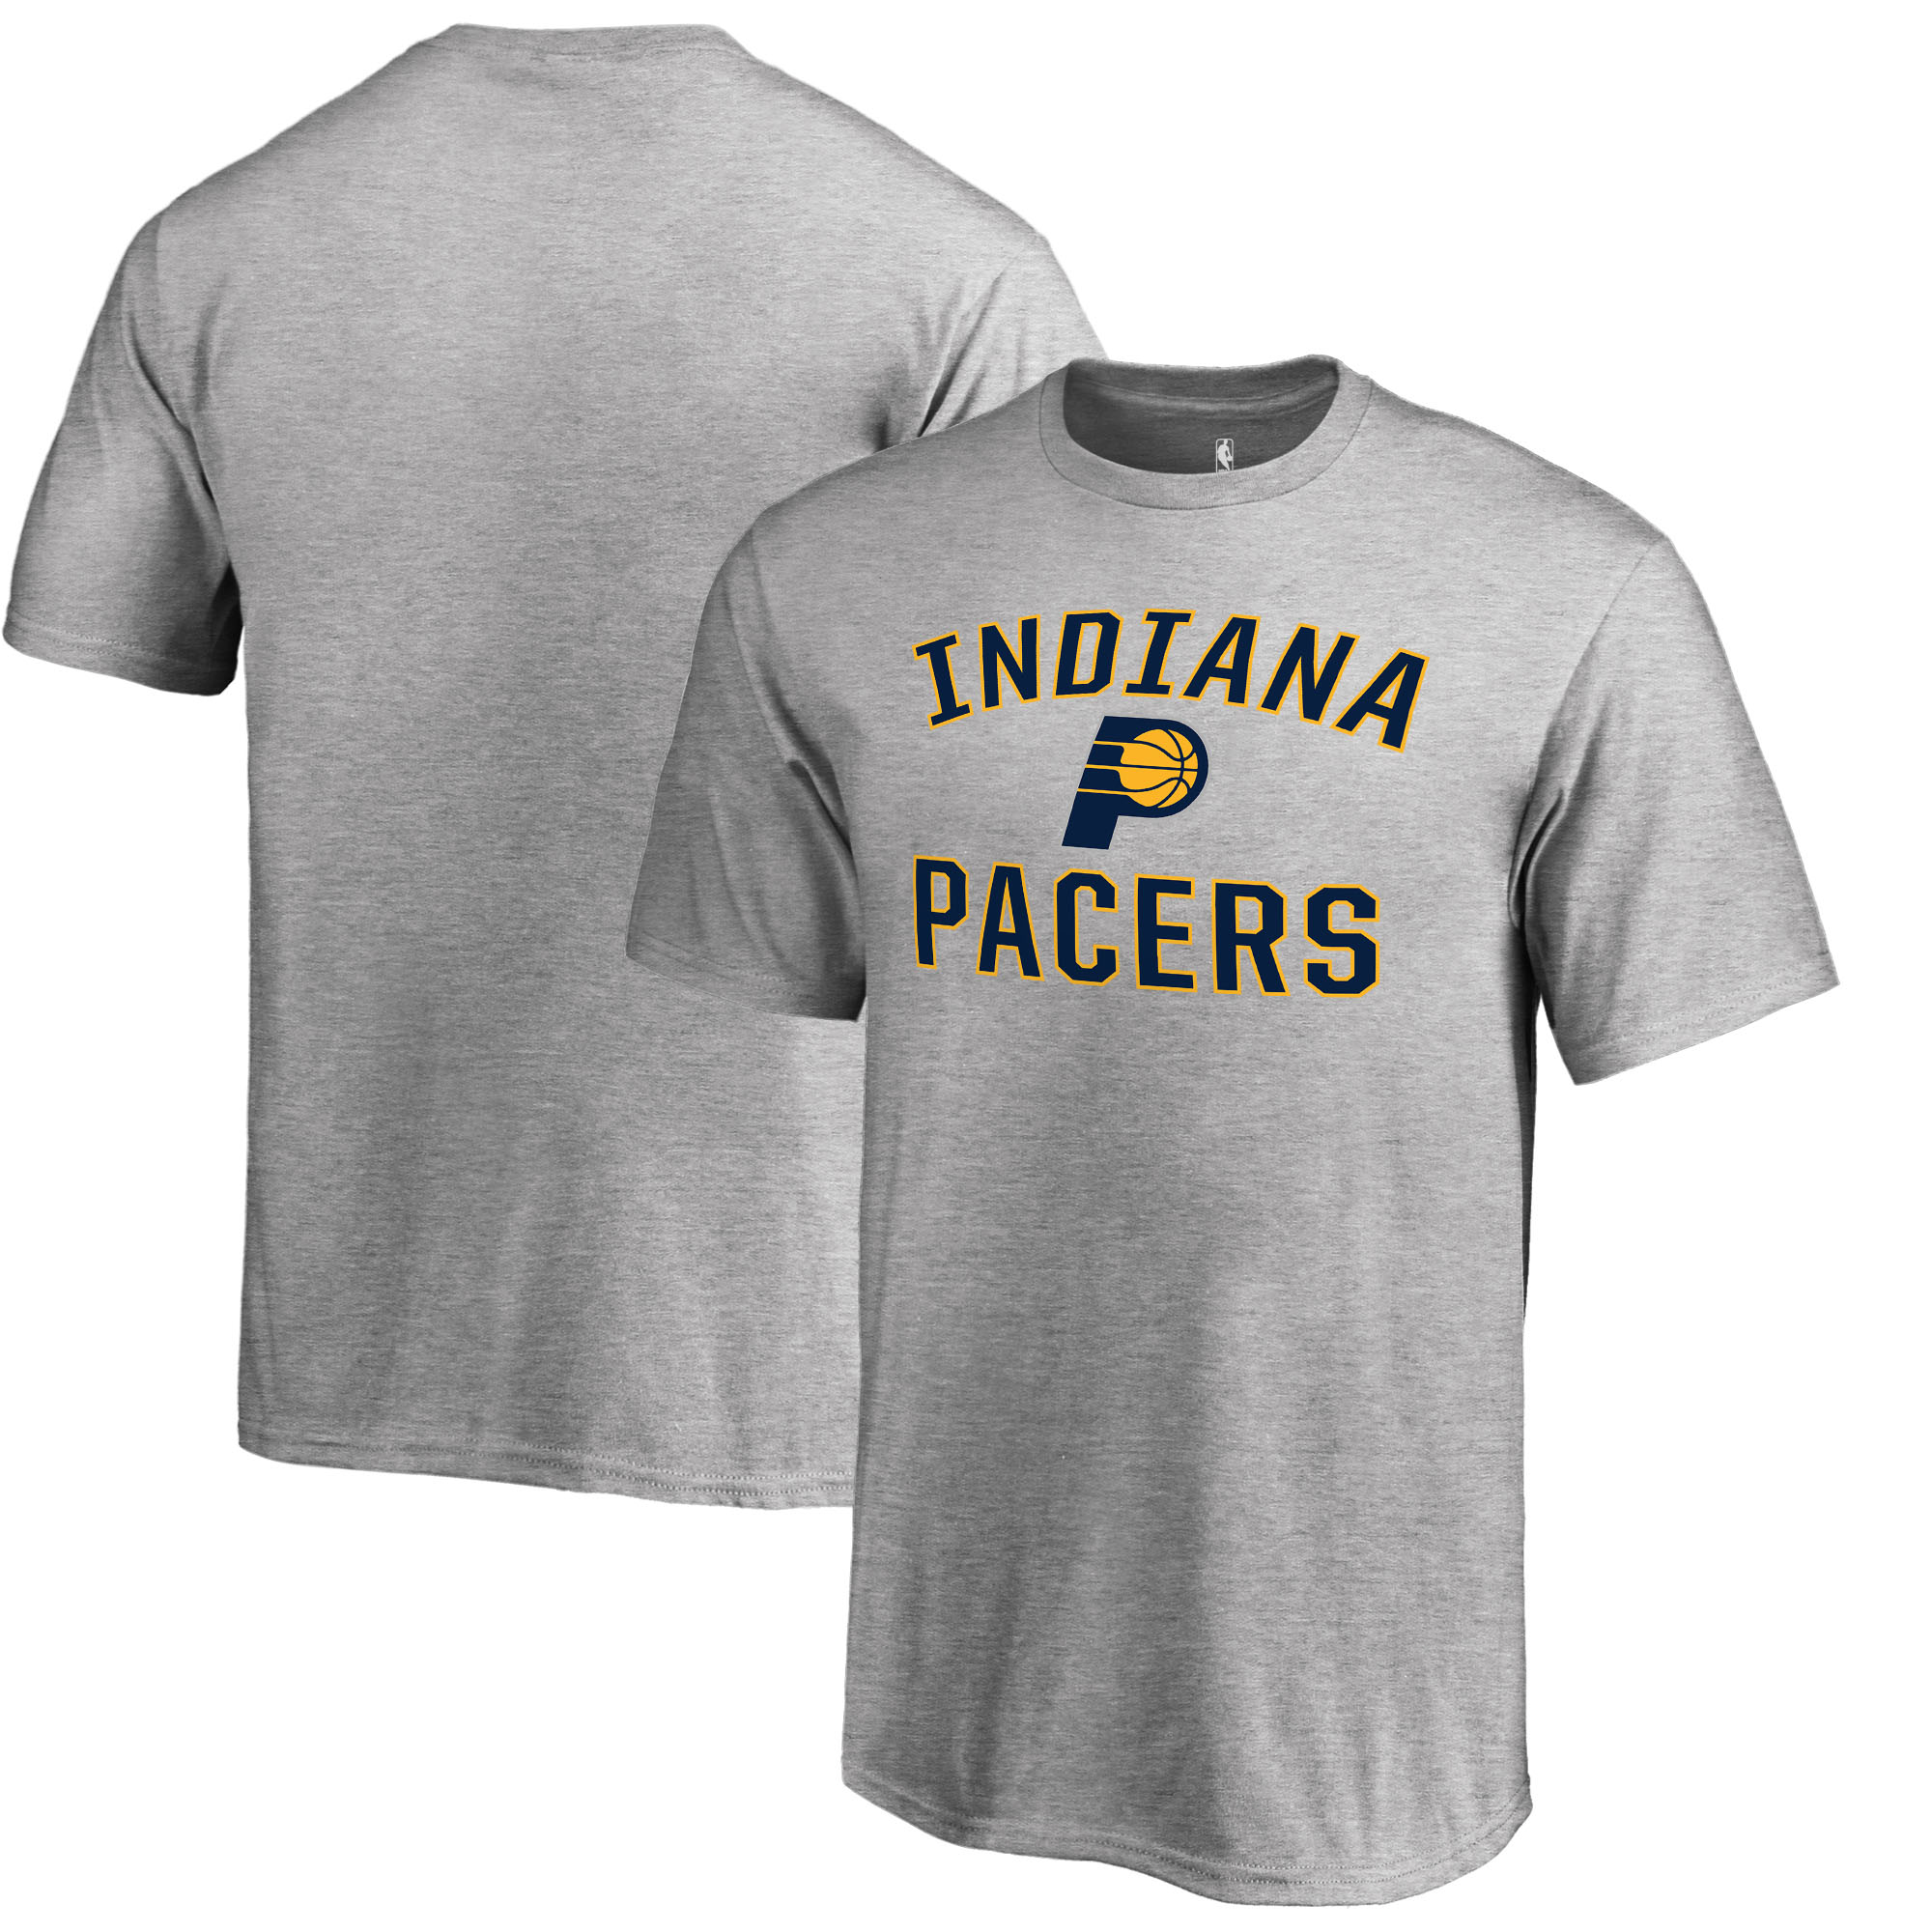 Indiana Pacers Fanatics Branded Youth Victory Arch T-Shirt - Heathered Gray